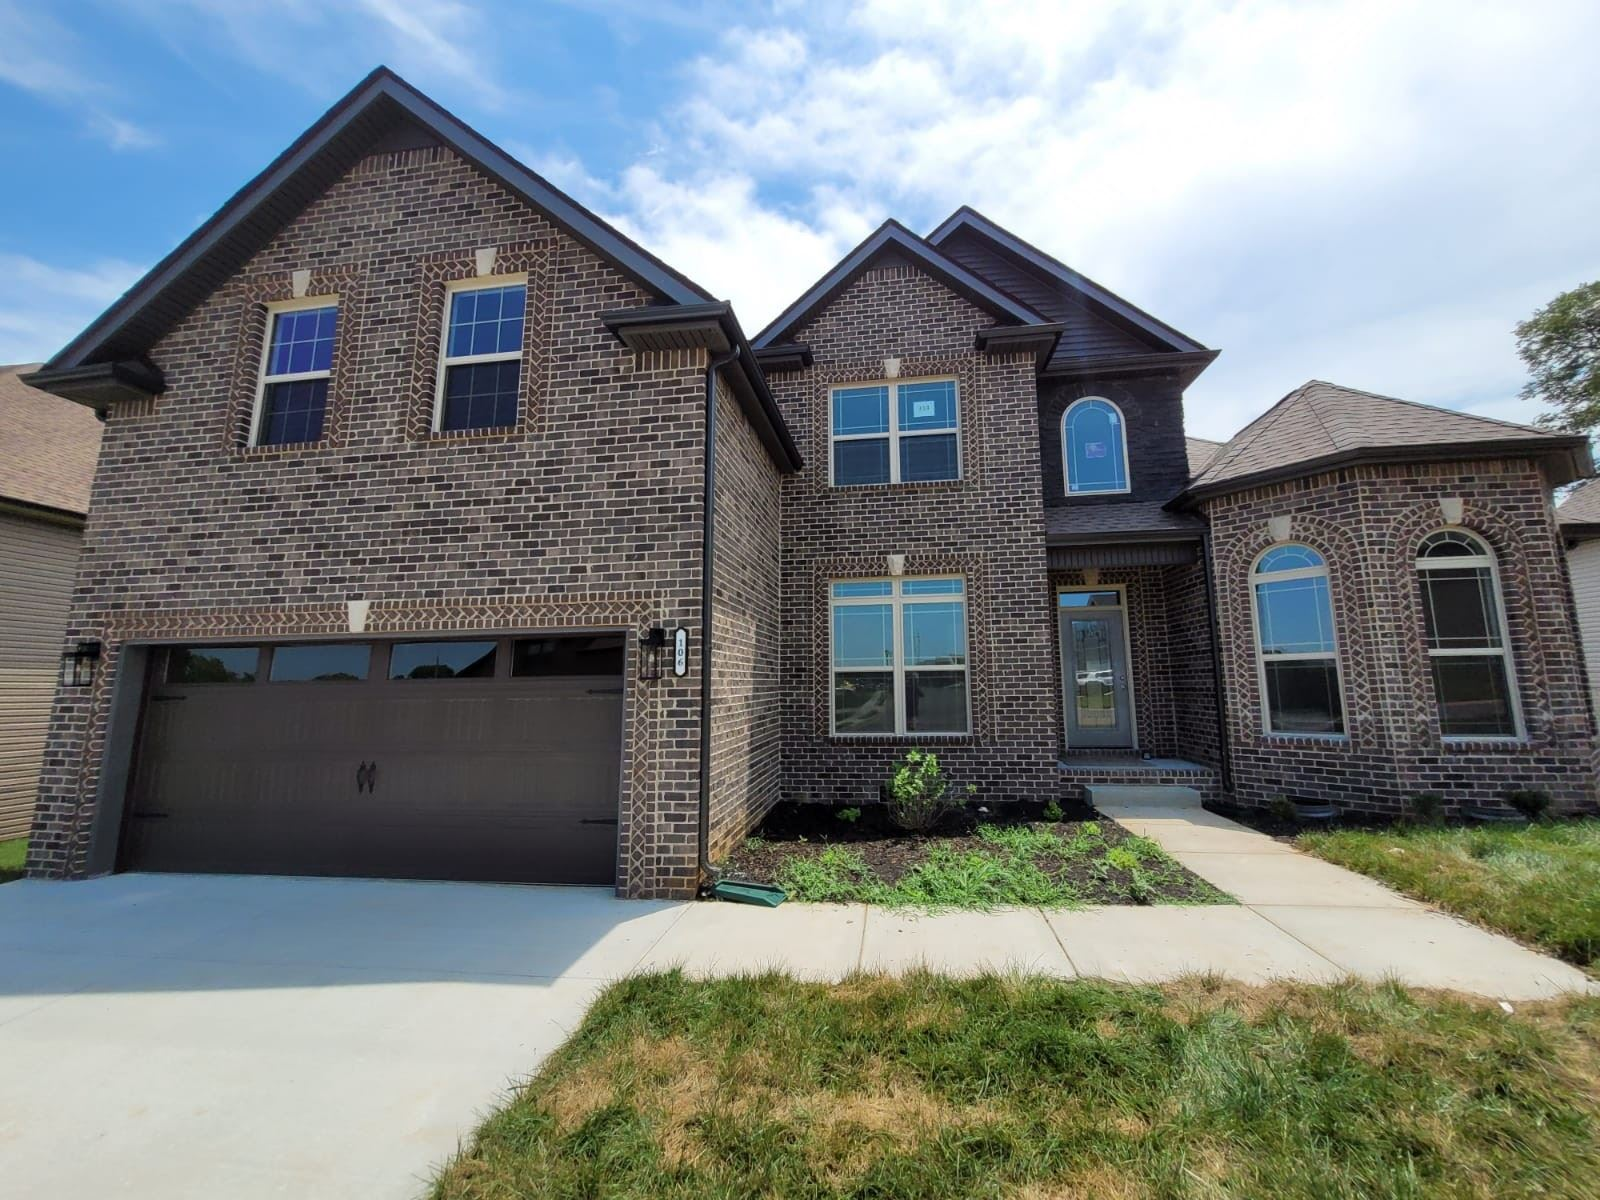 314 Griffey Estates, Clarksville, TN 37042 - MLS#: 2209677